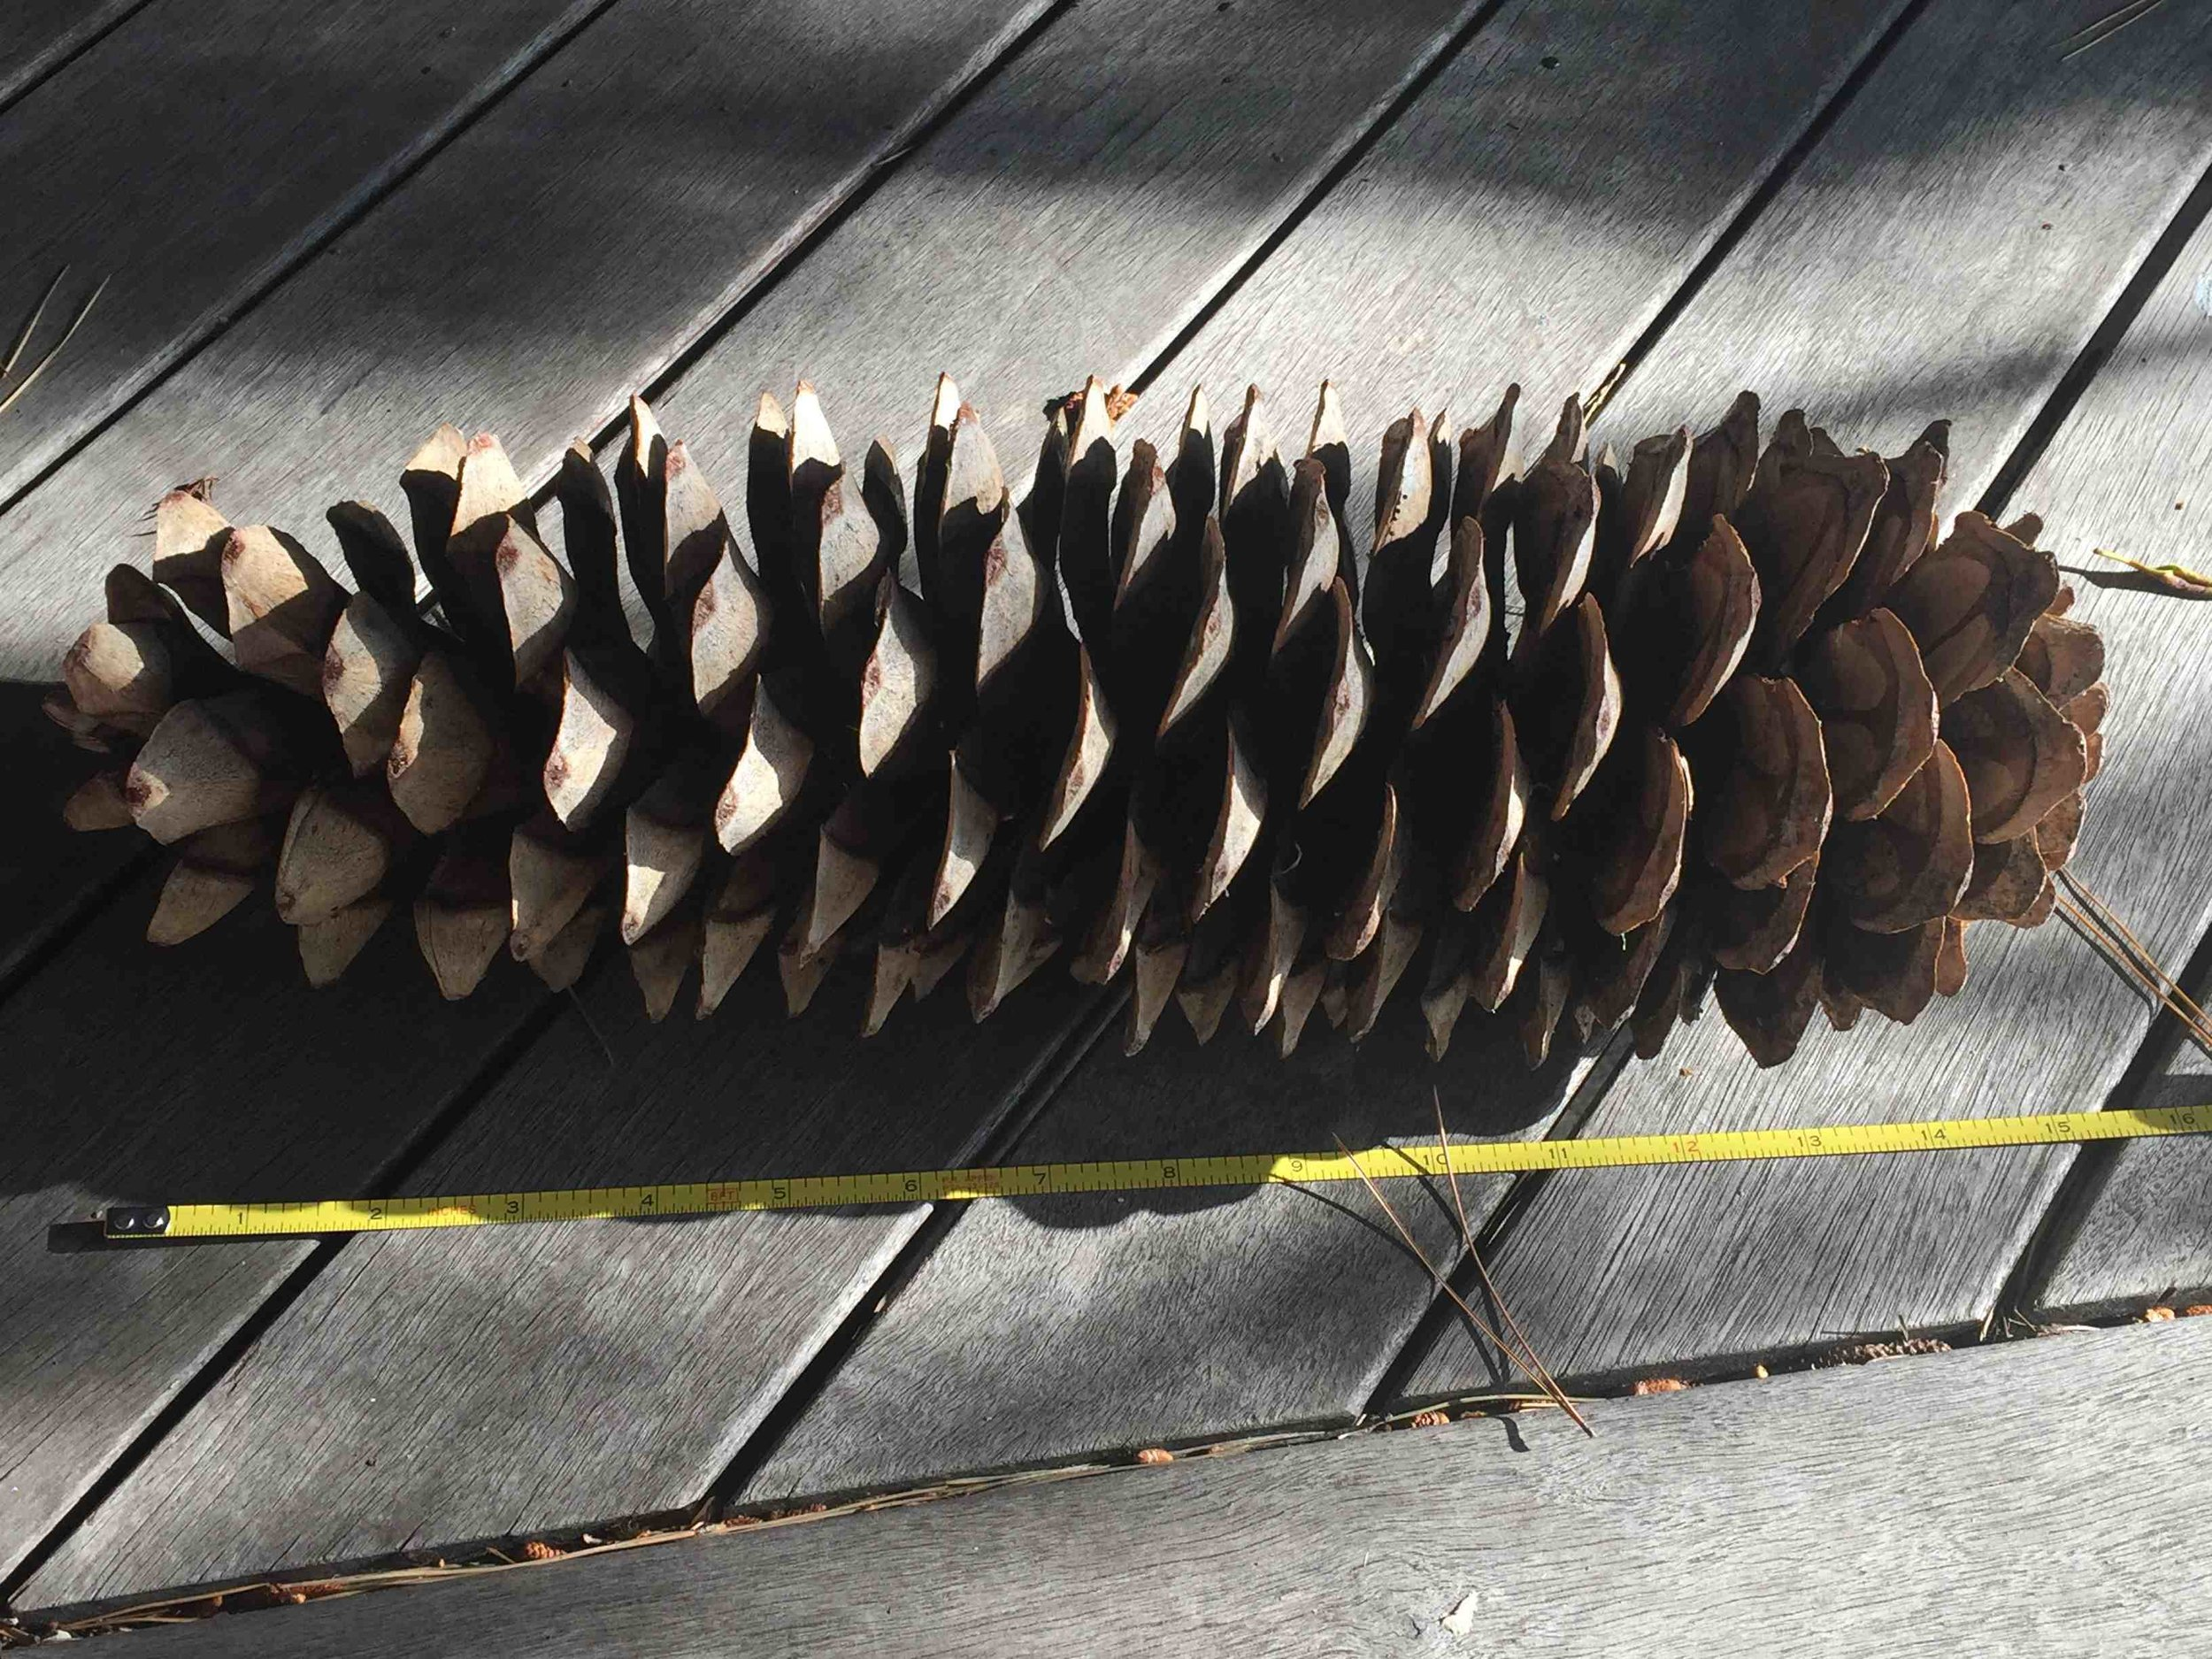 It takes two years and much nitrogen to grow these gigantic sugar pine cones, the longest of all pines. Its large seeds are a prized food source for many ground dwelling mammals. Twenty-four-inch long cones are not uncommon!